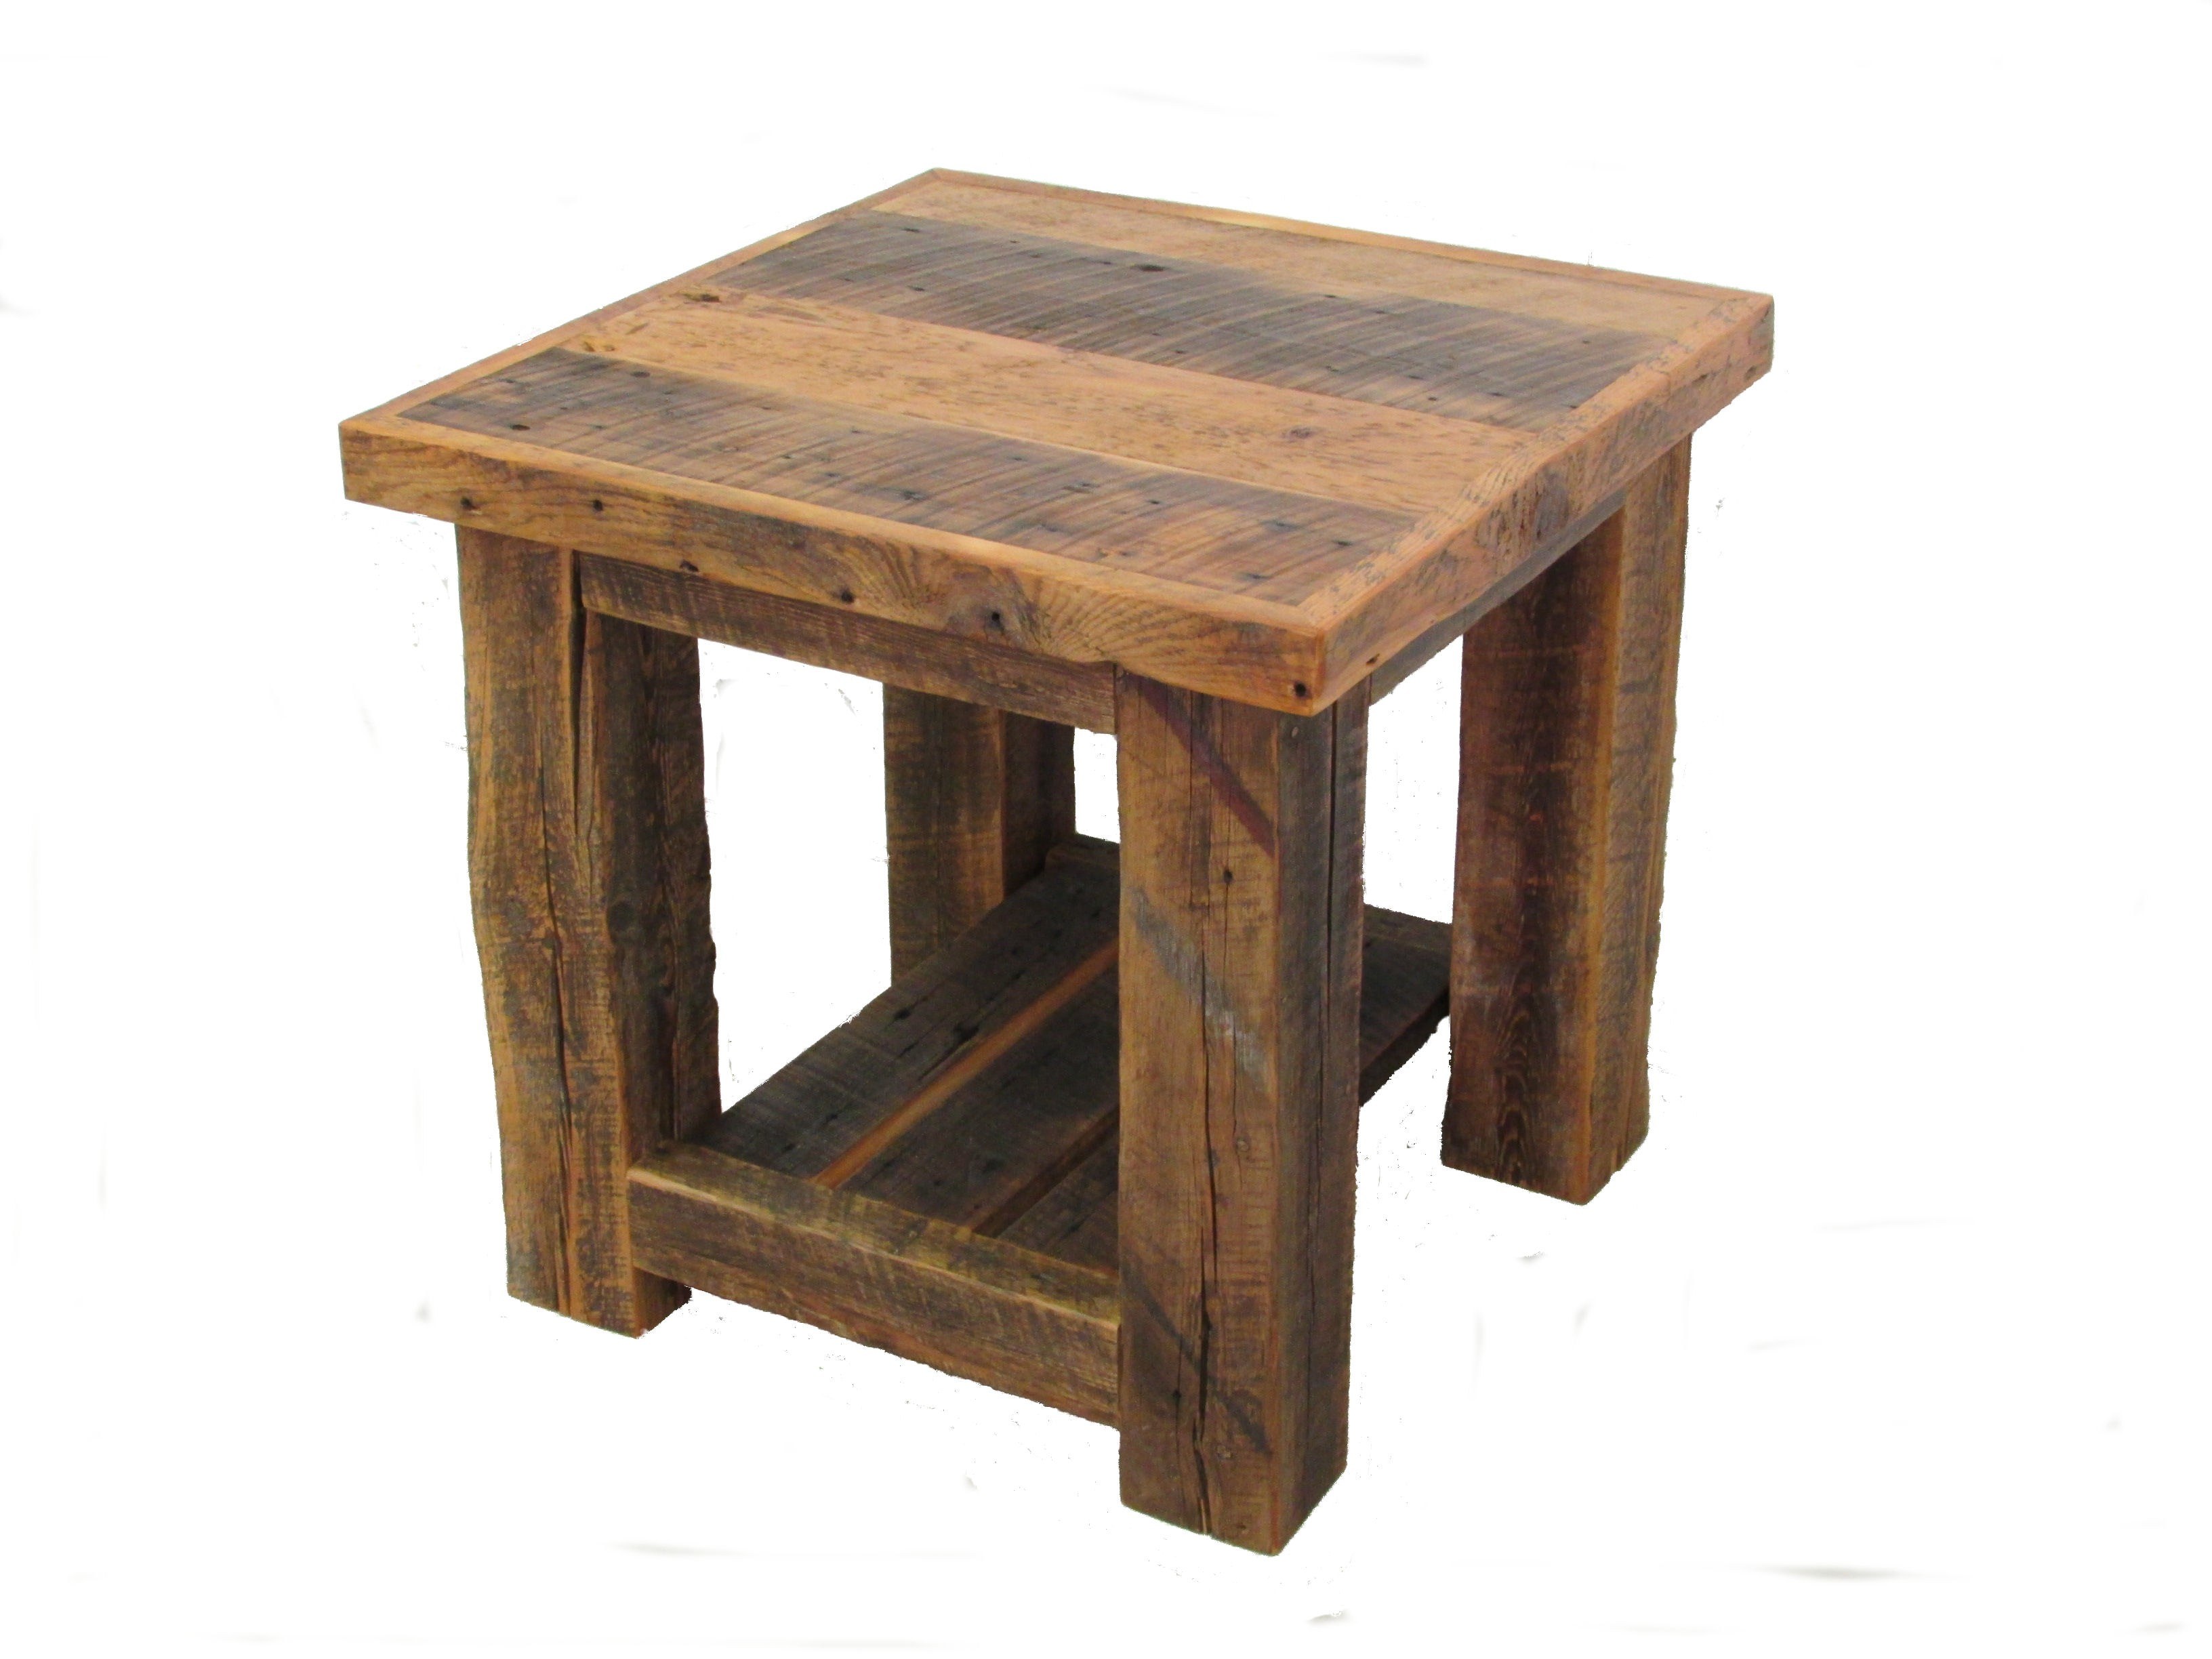 top wooden end tables with wood post table regard barnwood accent high gloss side black coffee drawers lucite sofa inch tall nightstands screen porch furniture nightstand legs